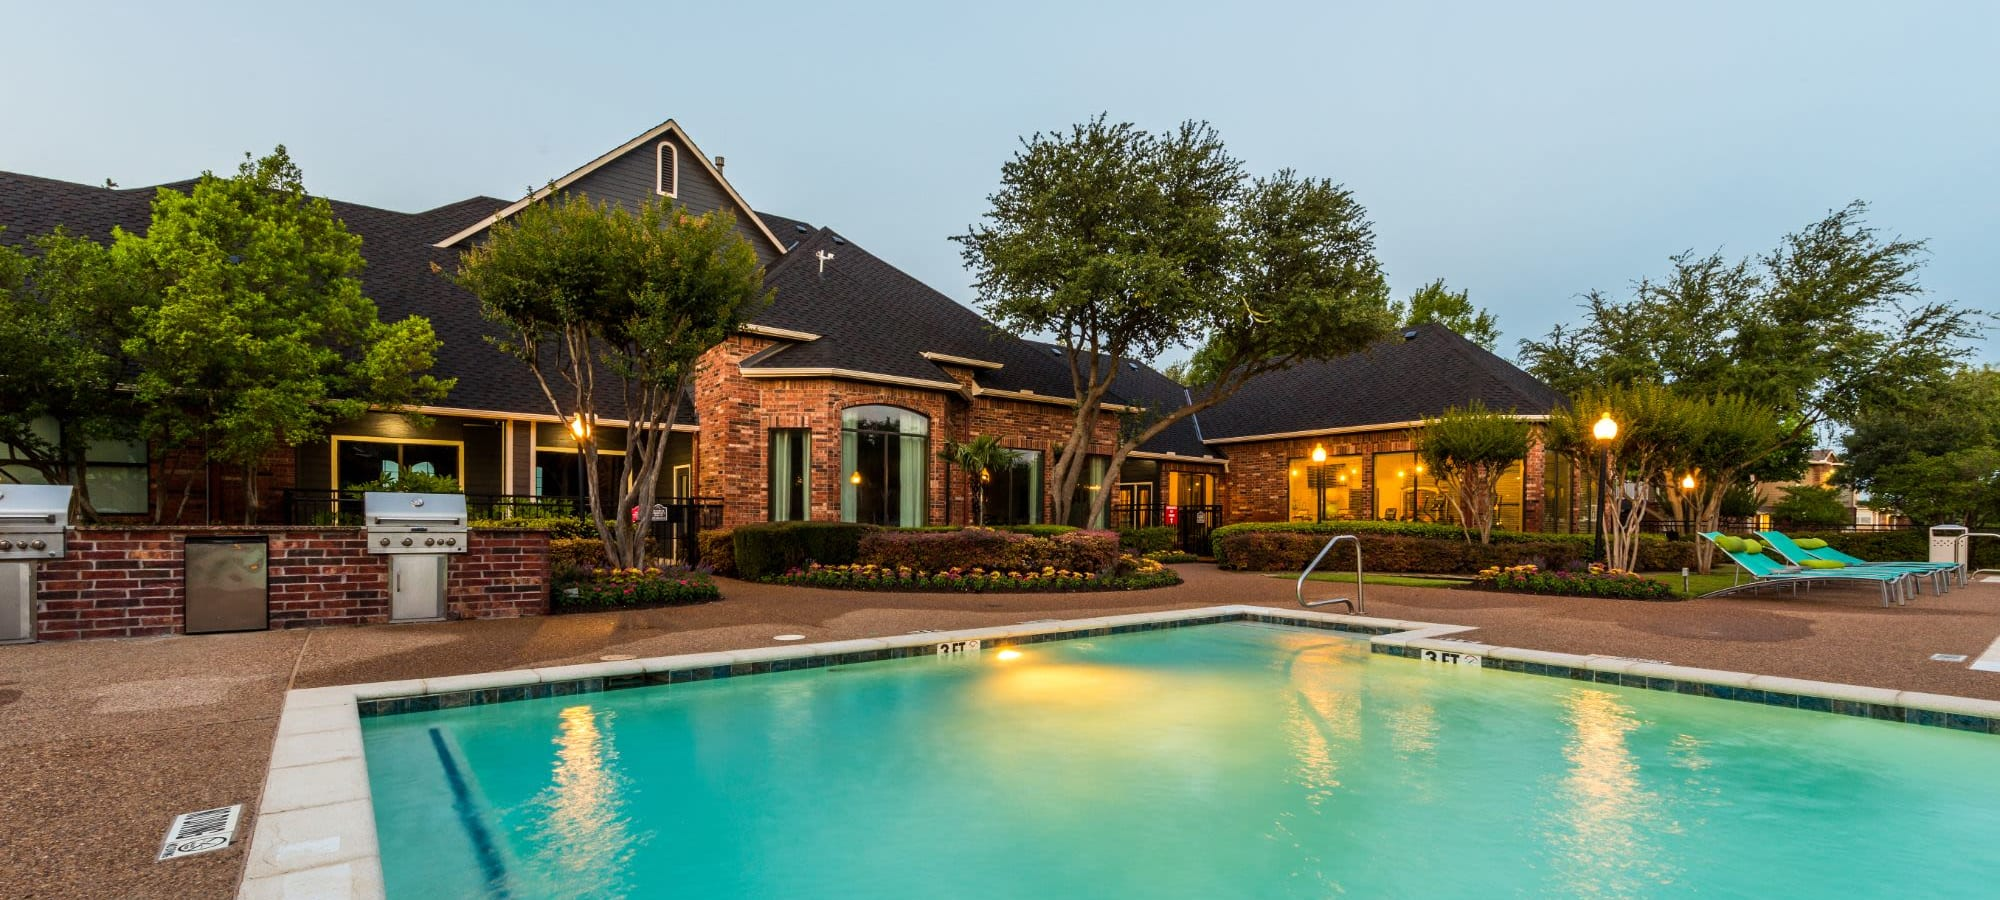 Amenities at Marquis at Stonebriar in Frisco, Texas